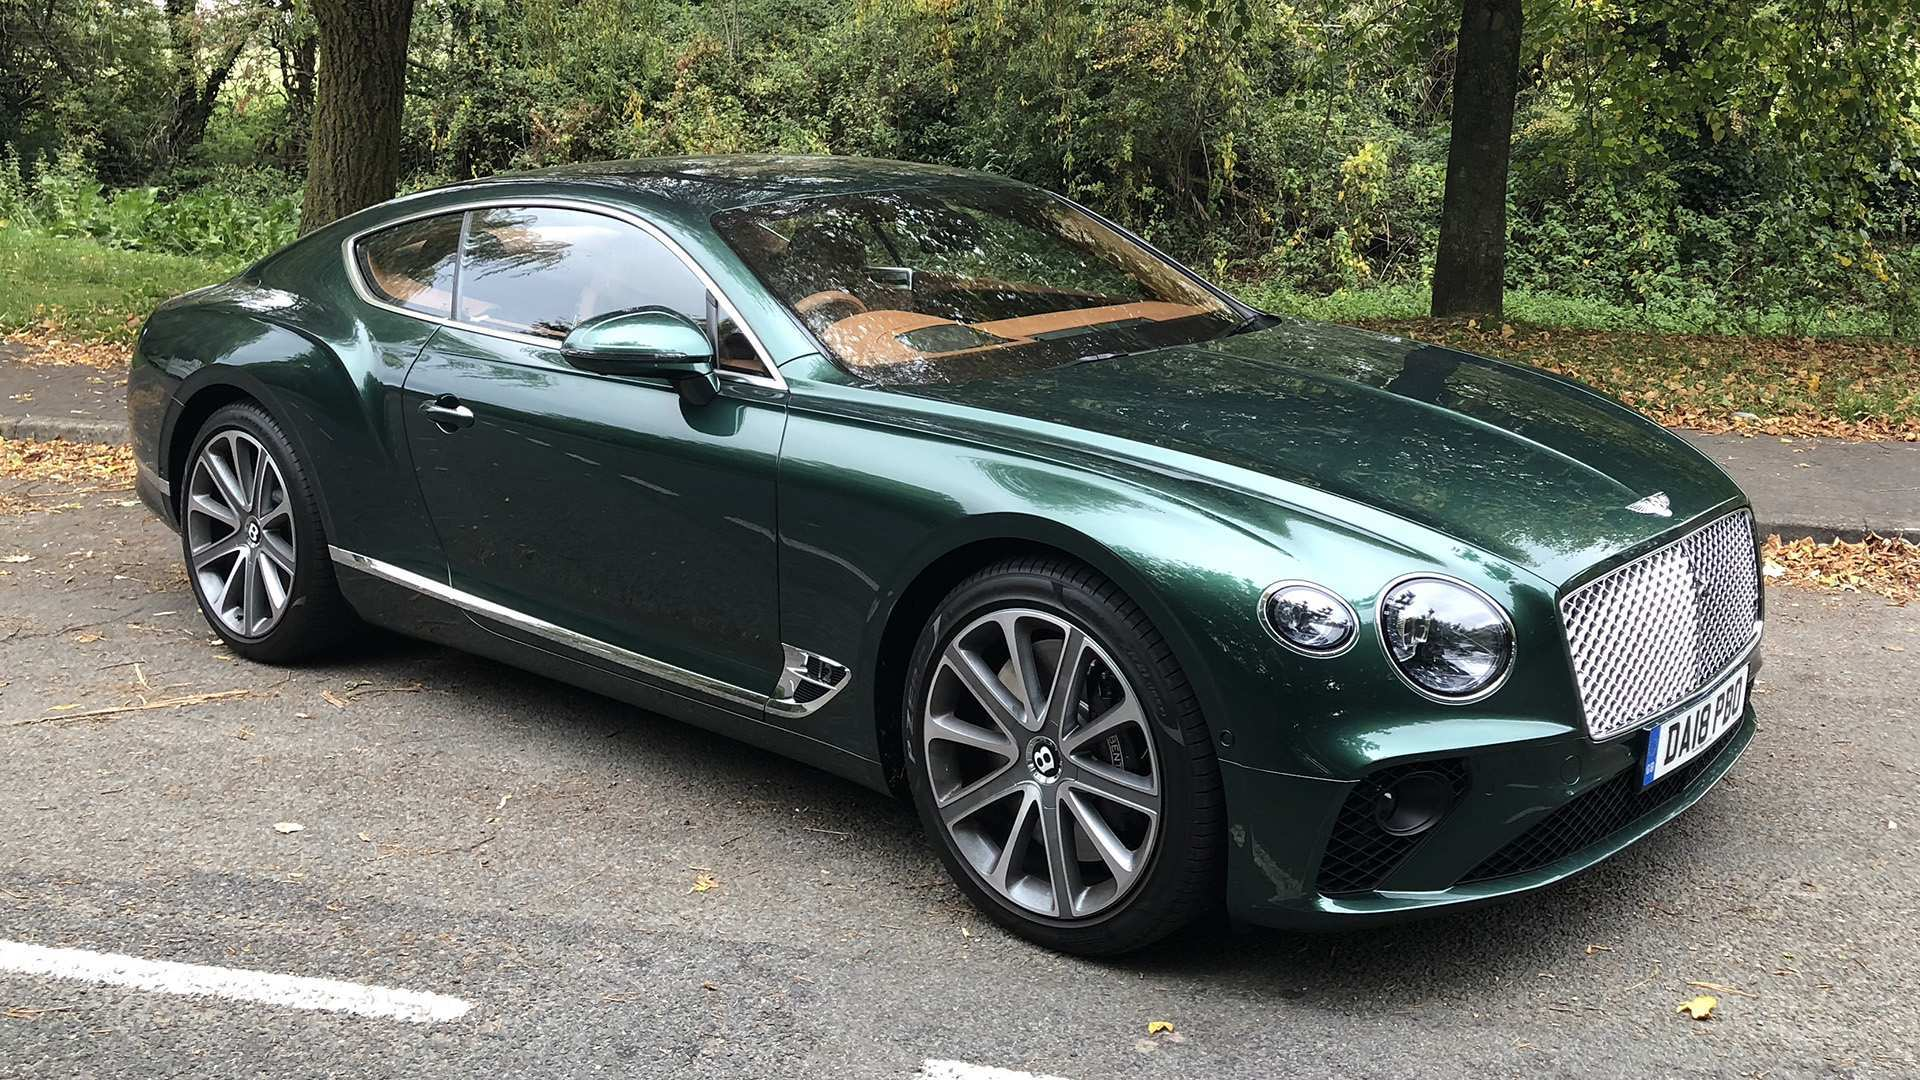 63 The 2019 Bentley Continental GT Style